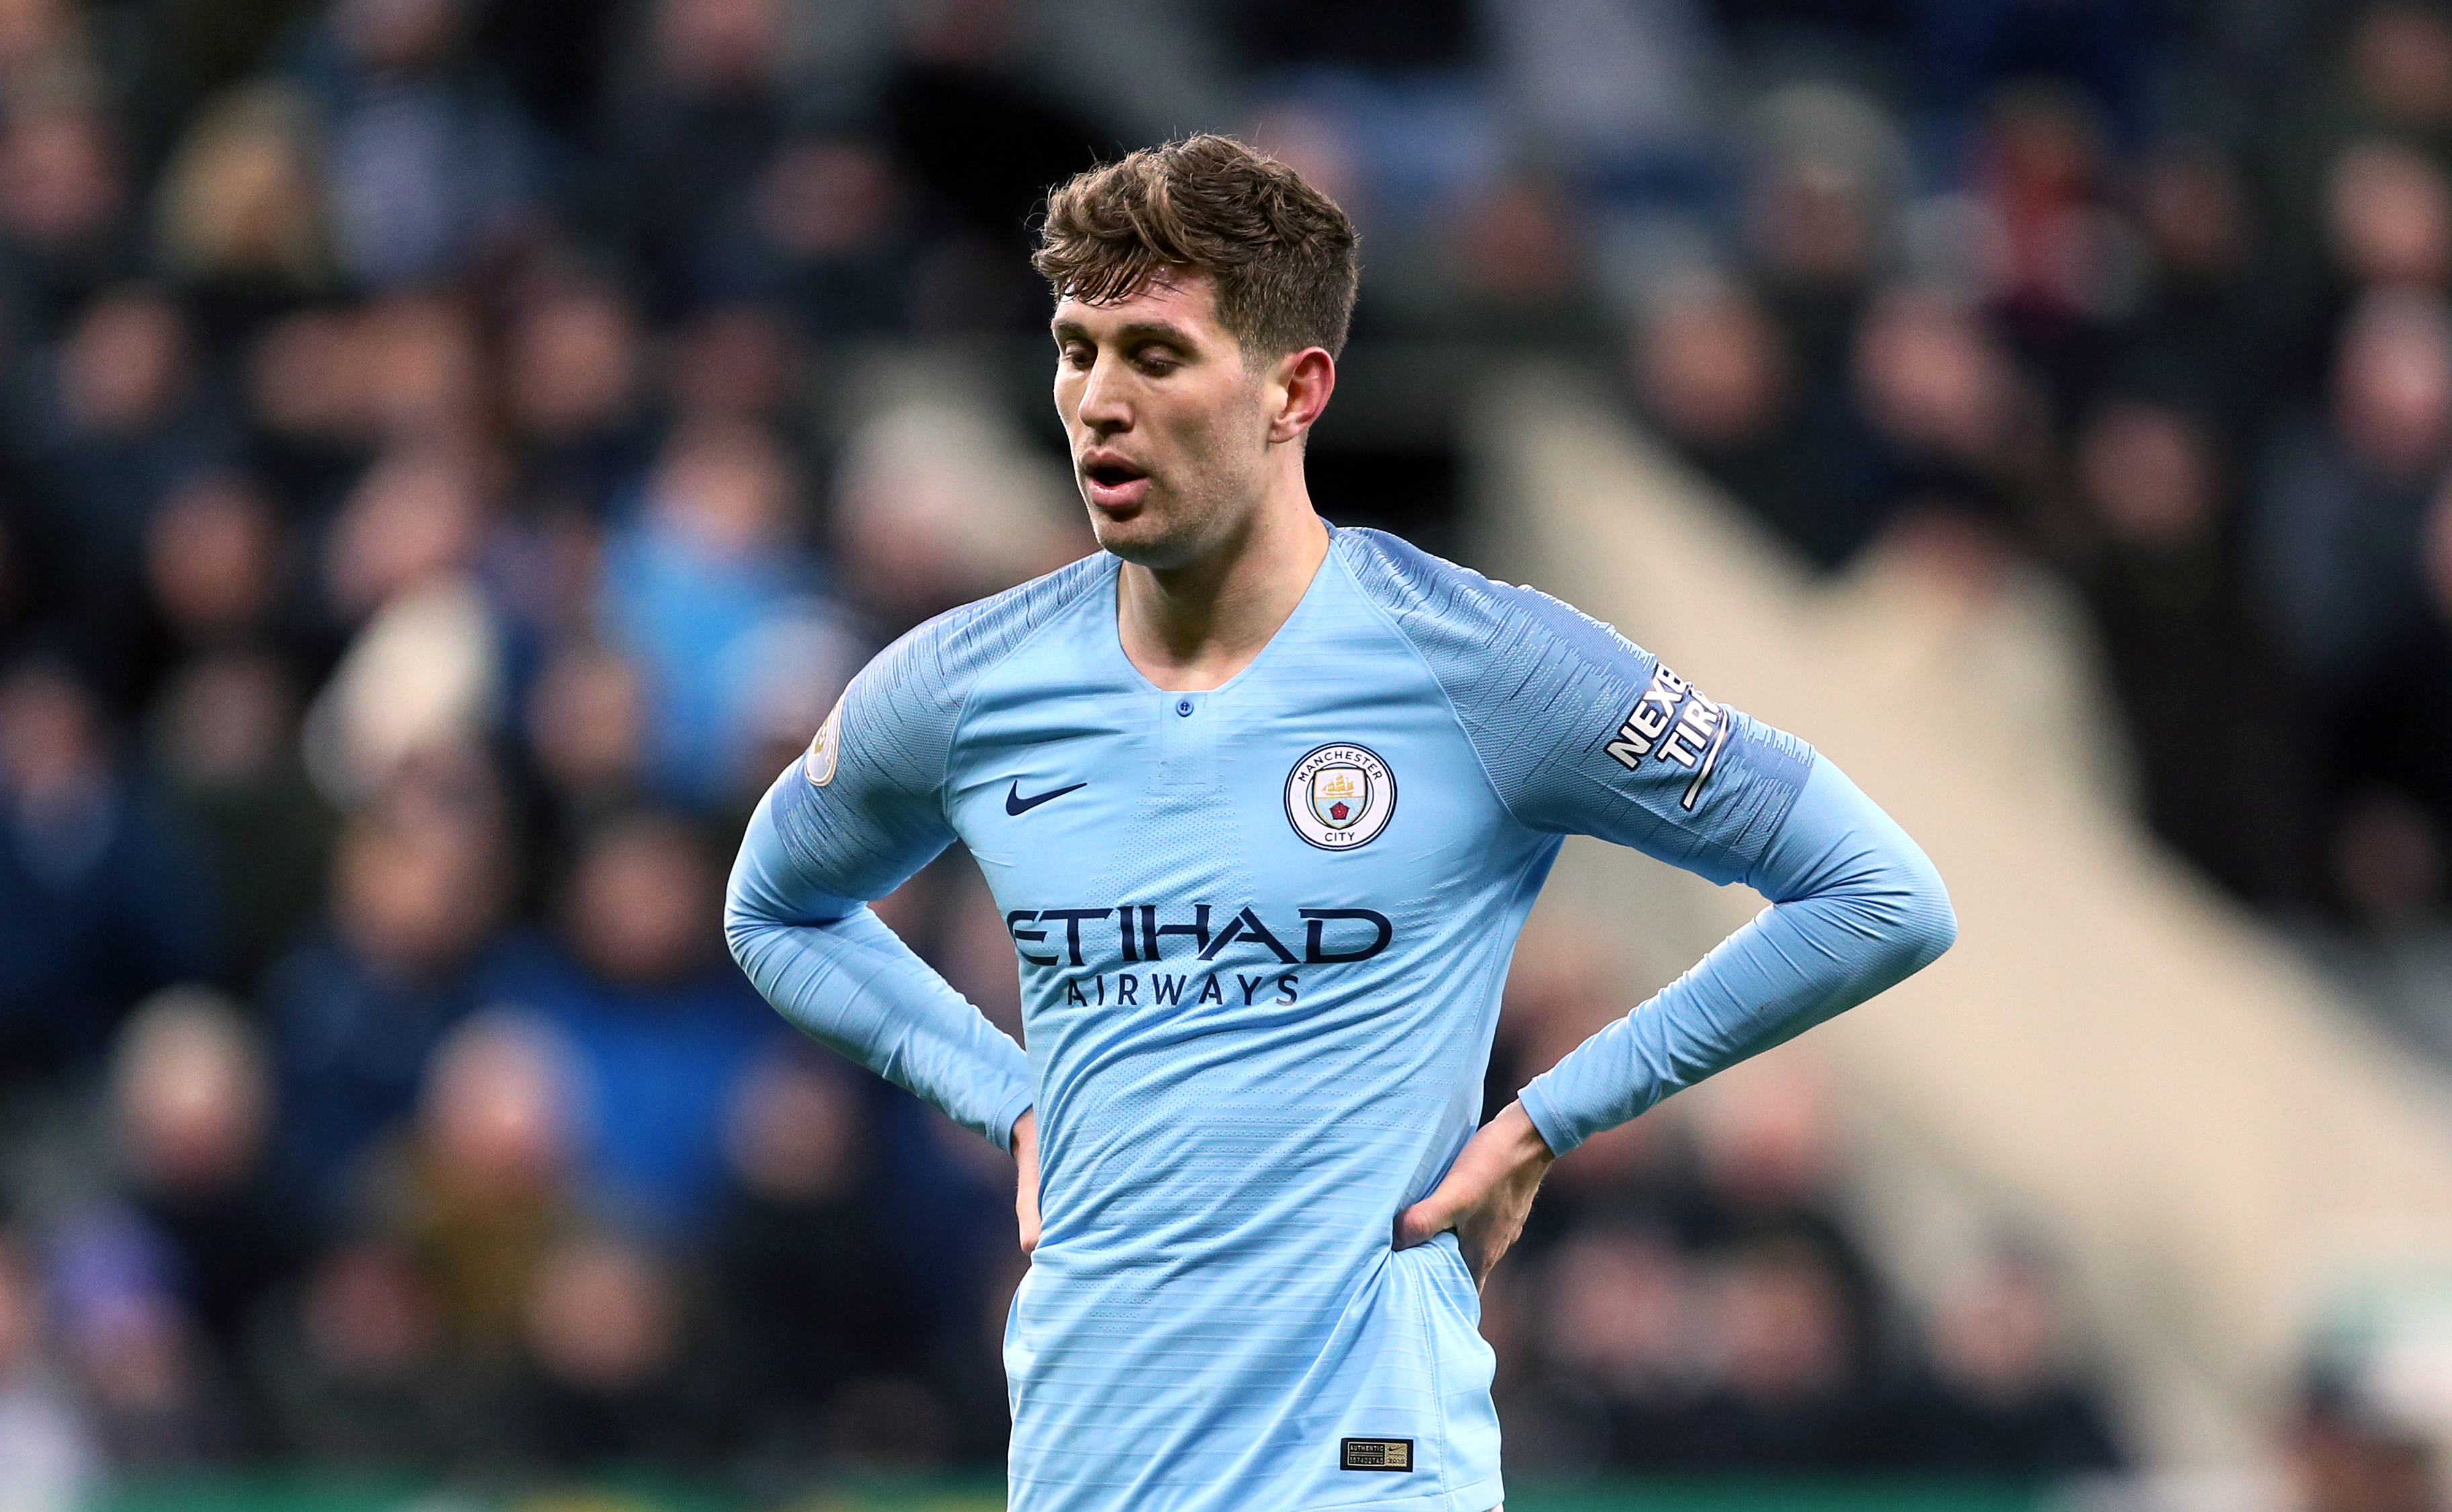 John Stones should be back after the international break